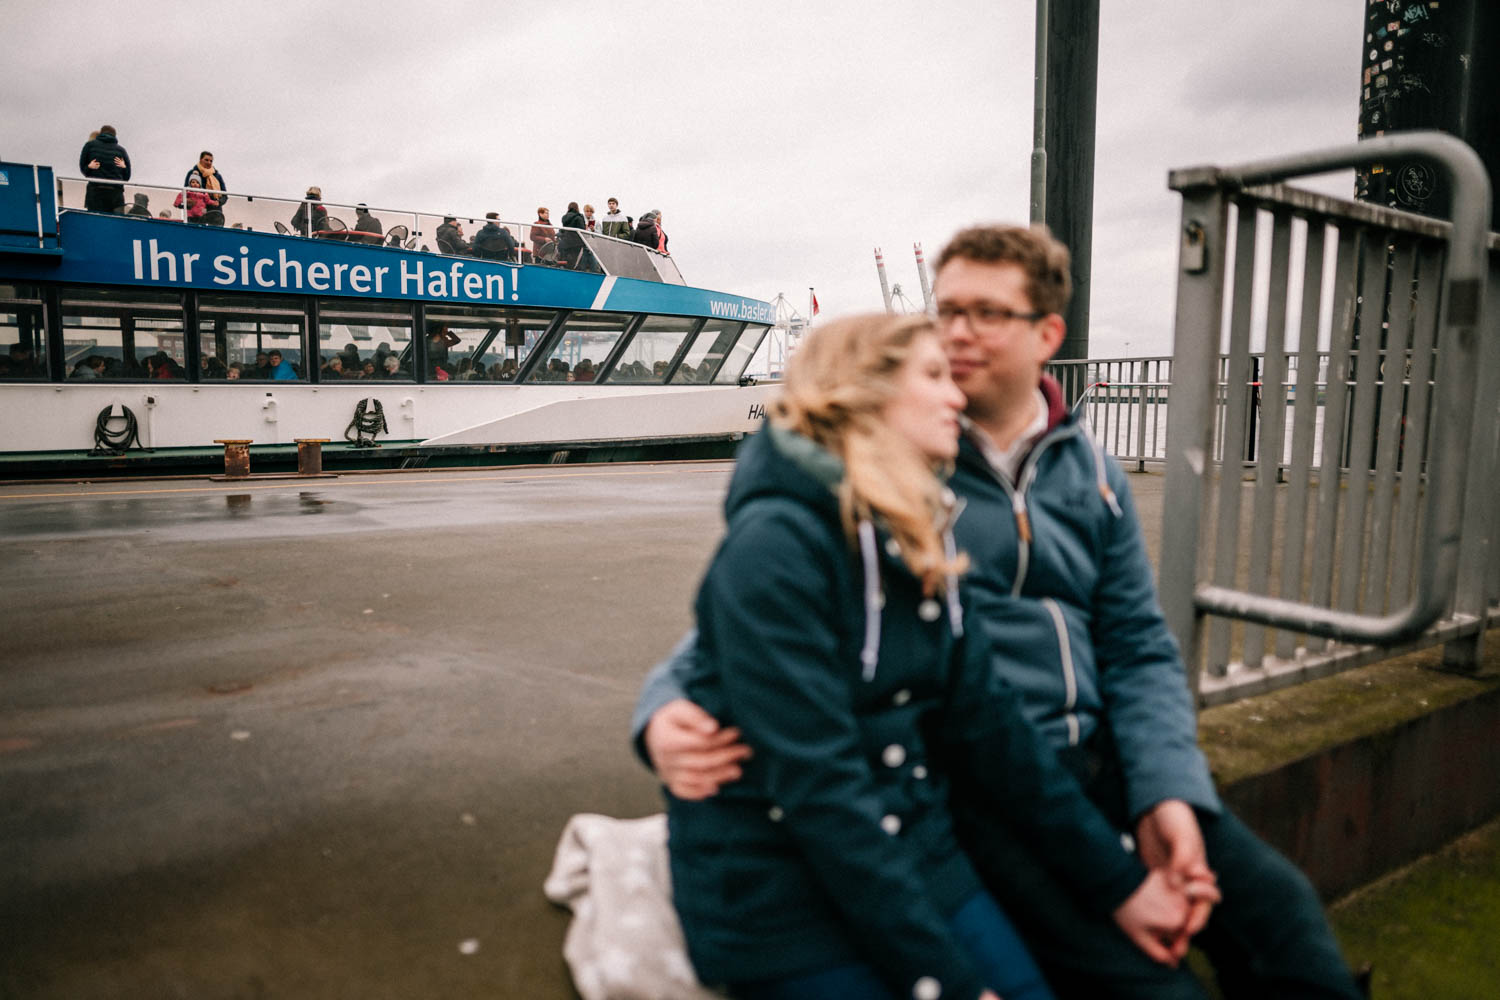 Engagementshooting, Hochzeitsfieber by Photo-Schomburg, Pärchenshoot, Hamburg, Elbe, Hamburger Hafen, Hochzeitsfotograf, Wedding, Coupleshoot-14